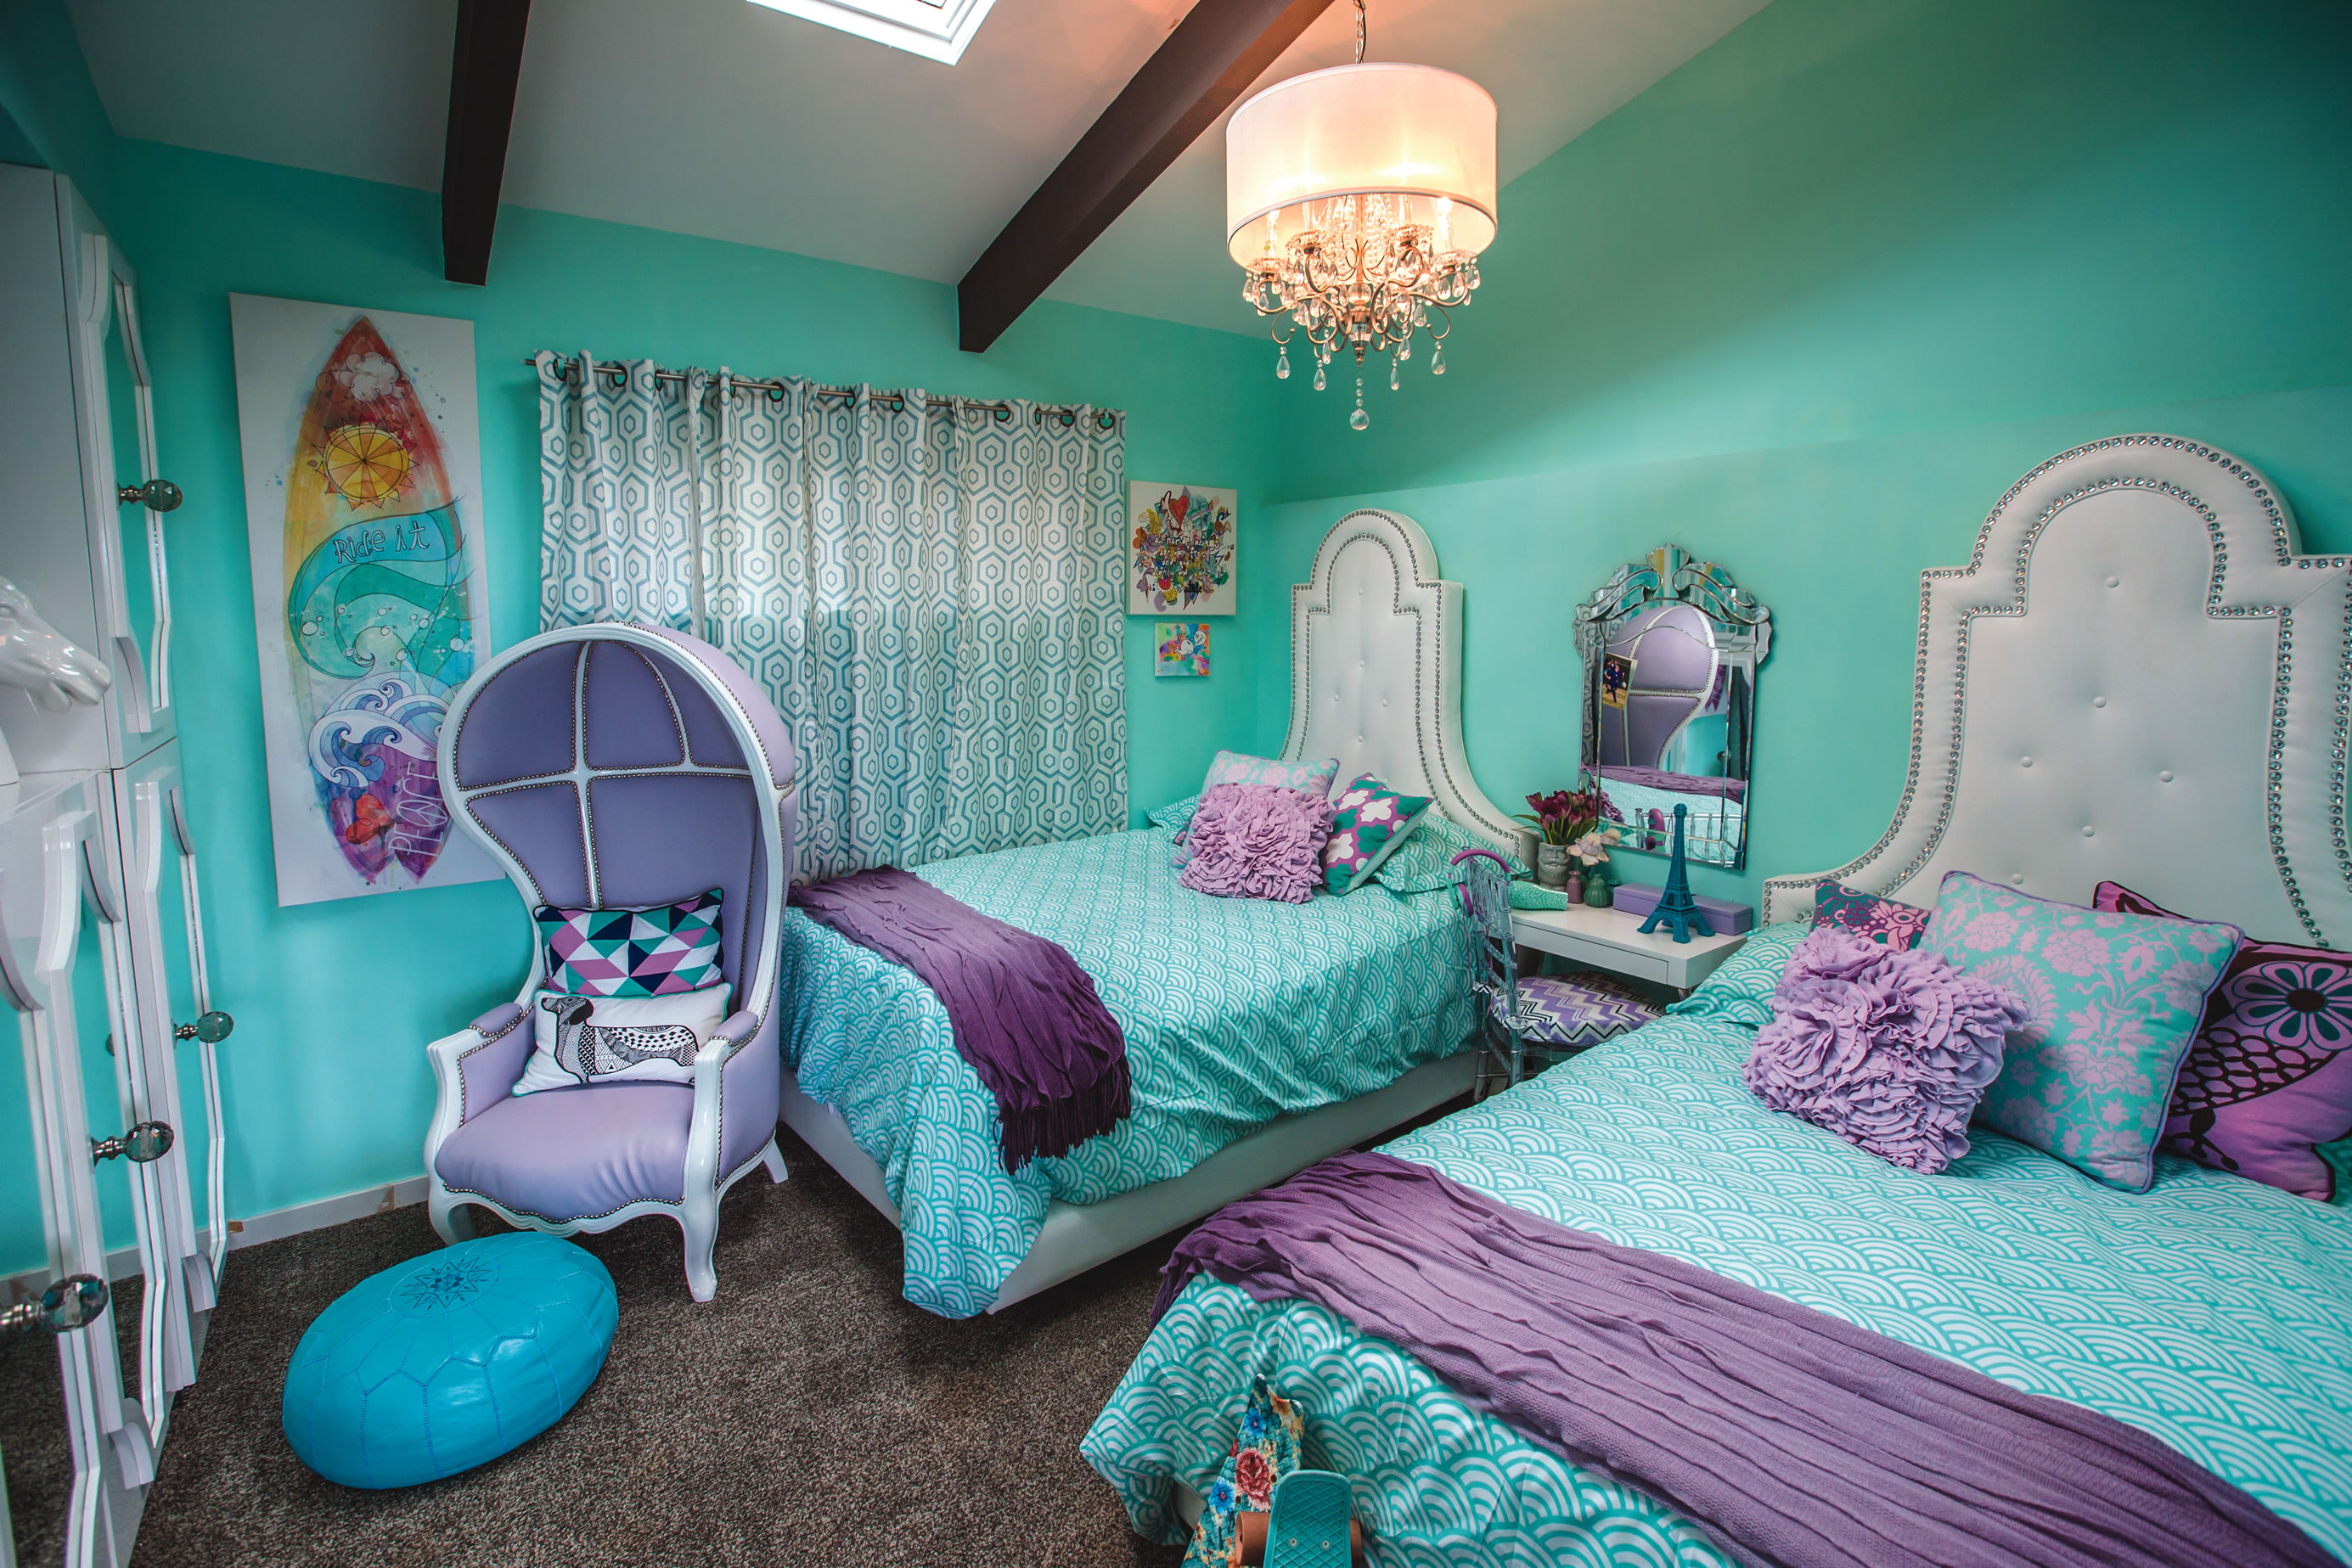 11 Year Old Bedroom Ideas 11 Year Old Bedroom Ideas Photo  4  Design Your Home